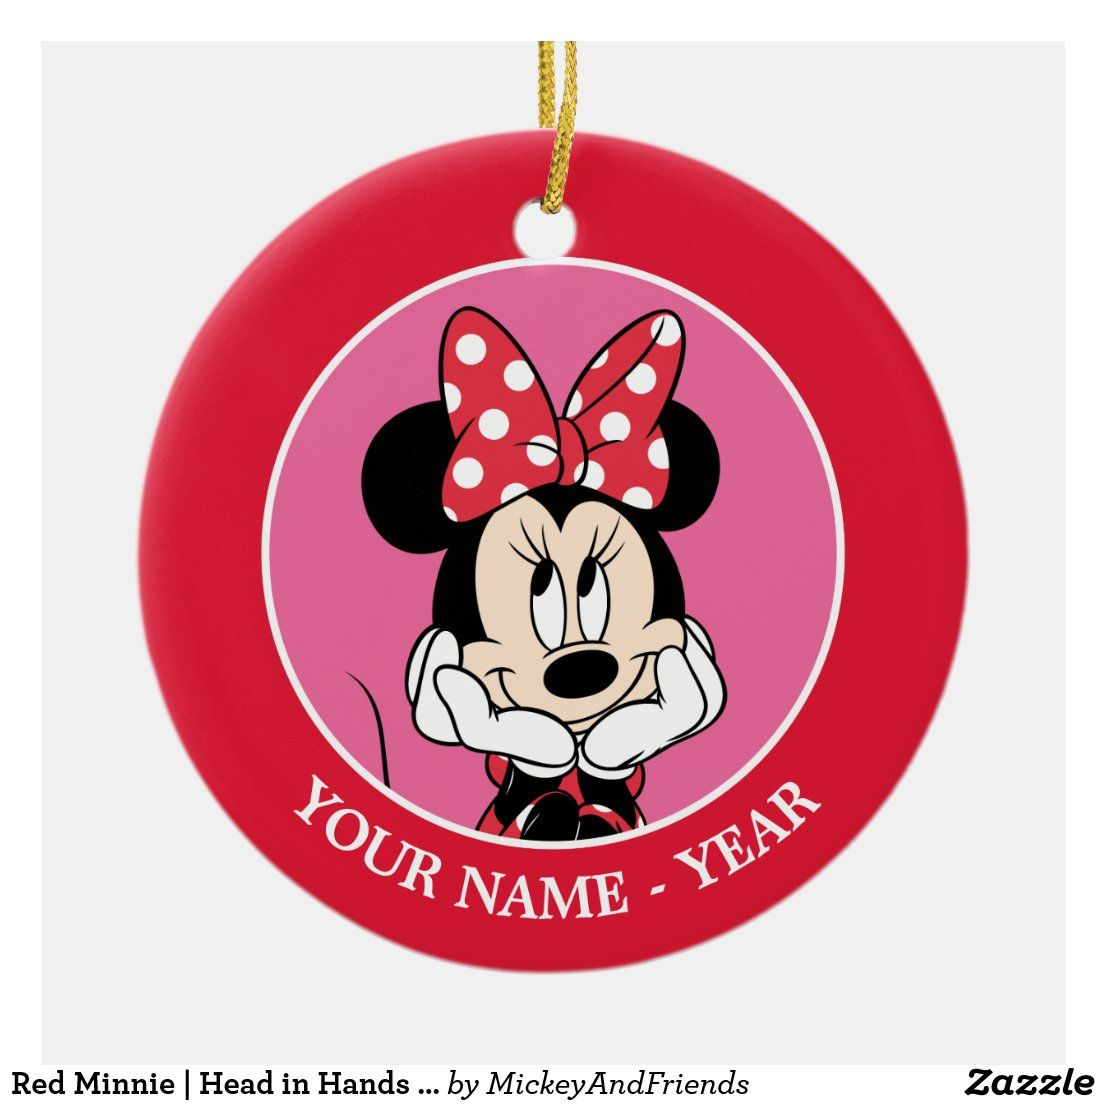 Red Minnie Head In Hands Add Your Name Ceramic Ornament Zazzle Com In 2020 Disney Christmas Ornaments Disney Gifts Minnie